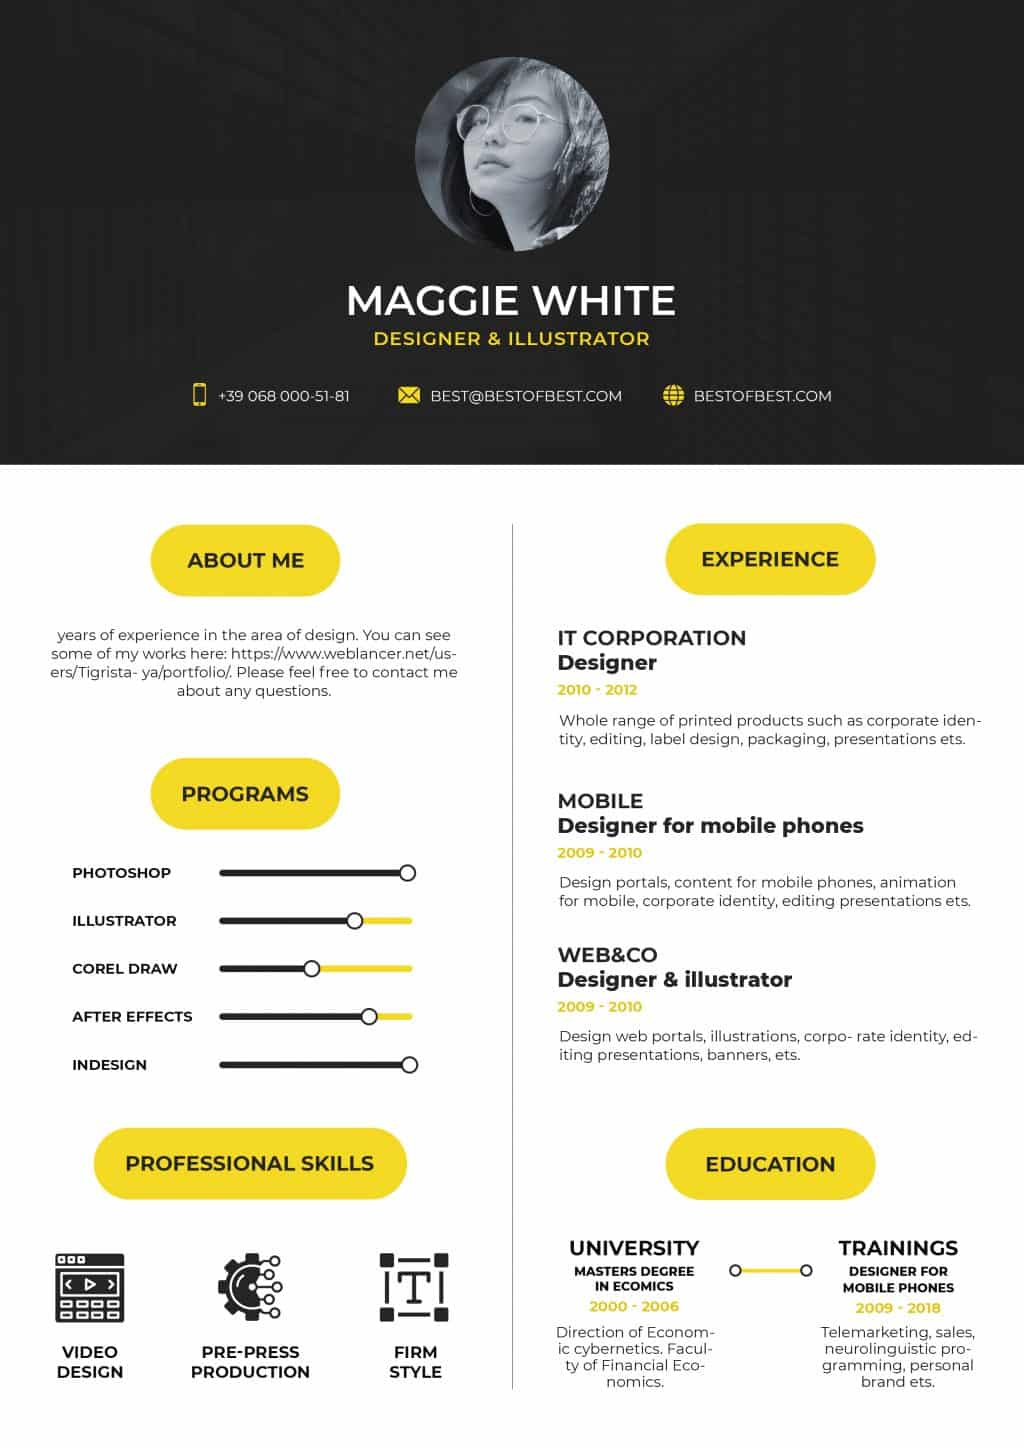 Best College Resume Templates 2020: 5 colors - $8 - yellow